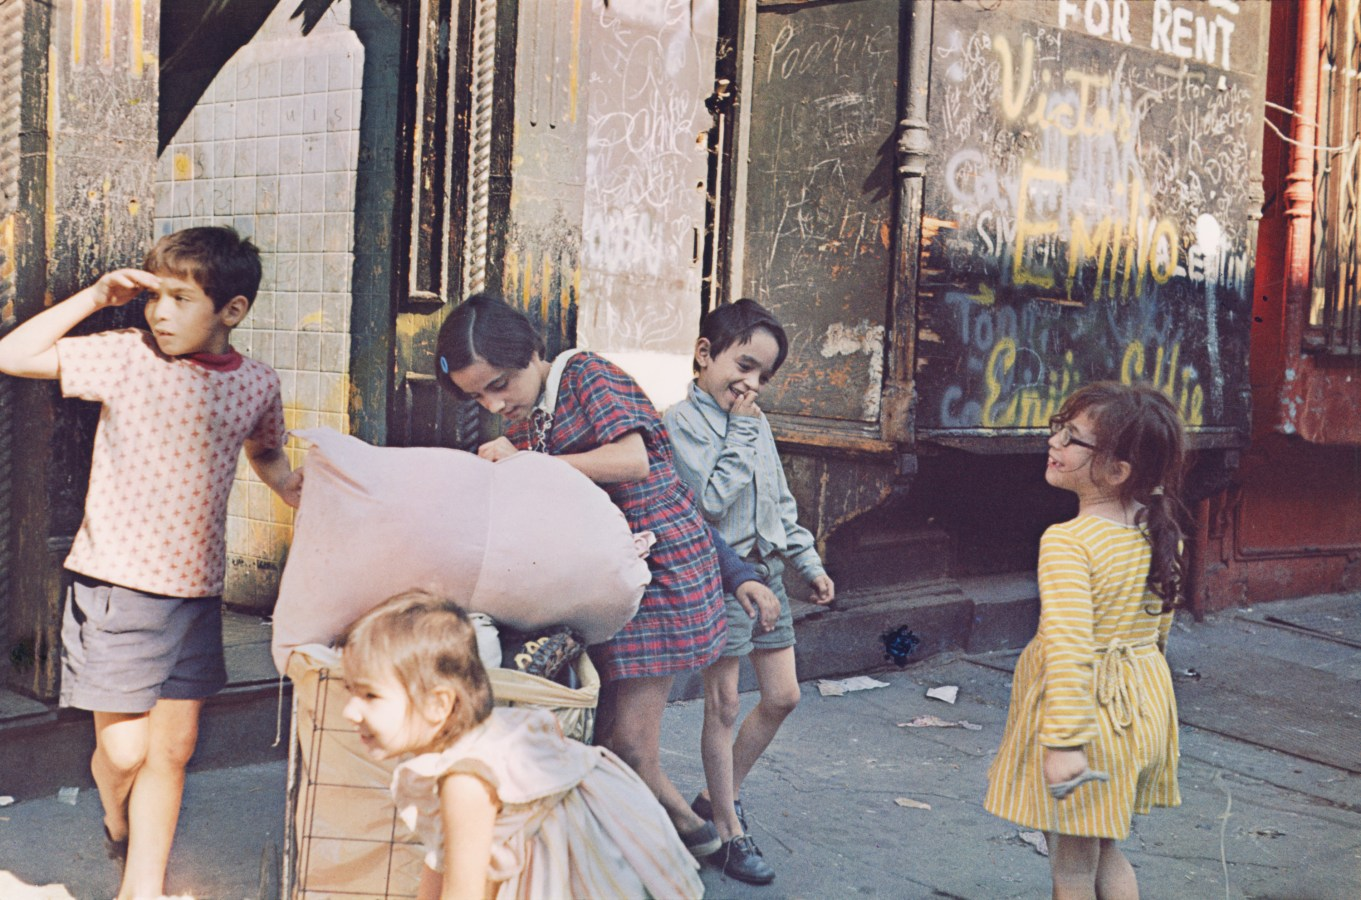 Color photograph of five children playing on the sidewalk.